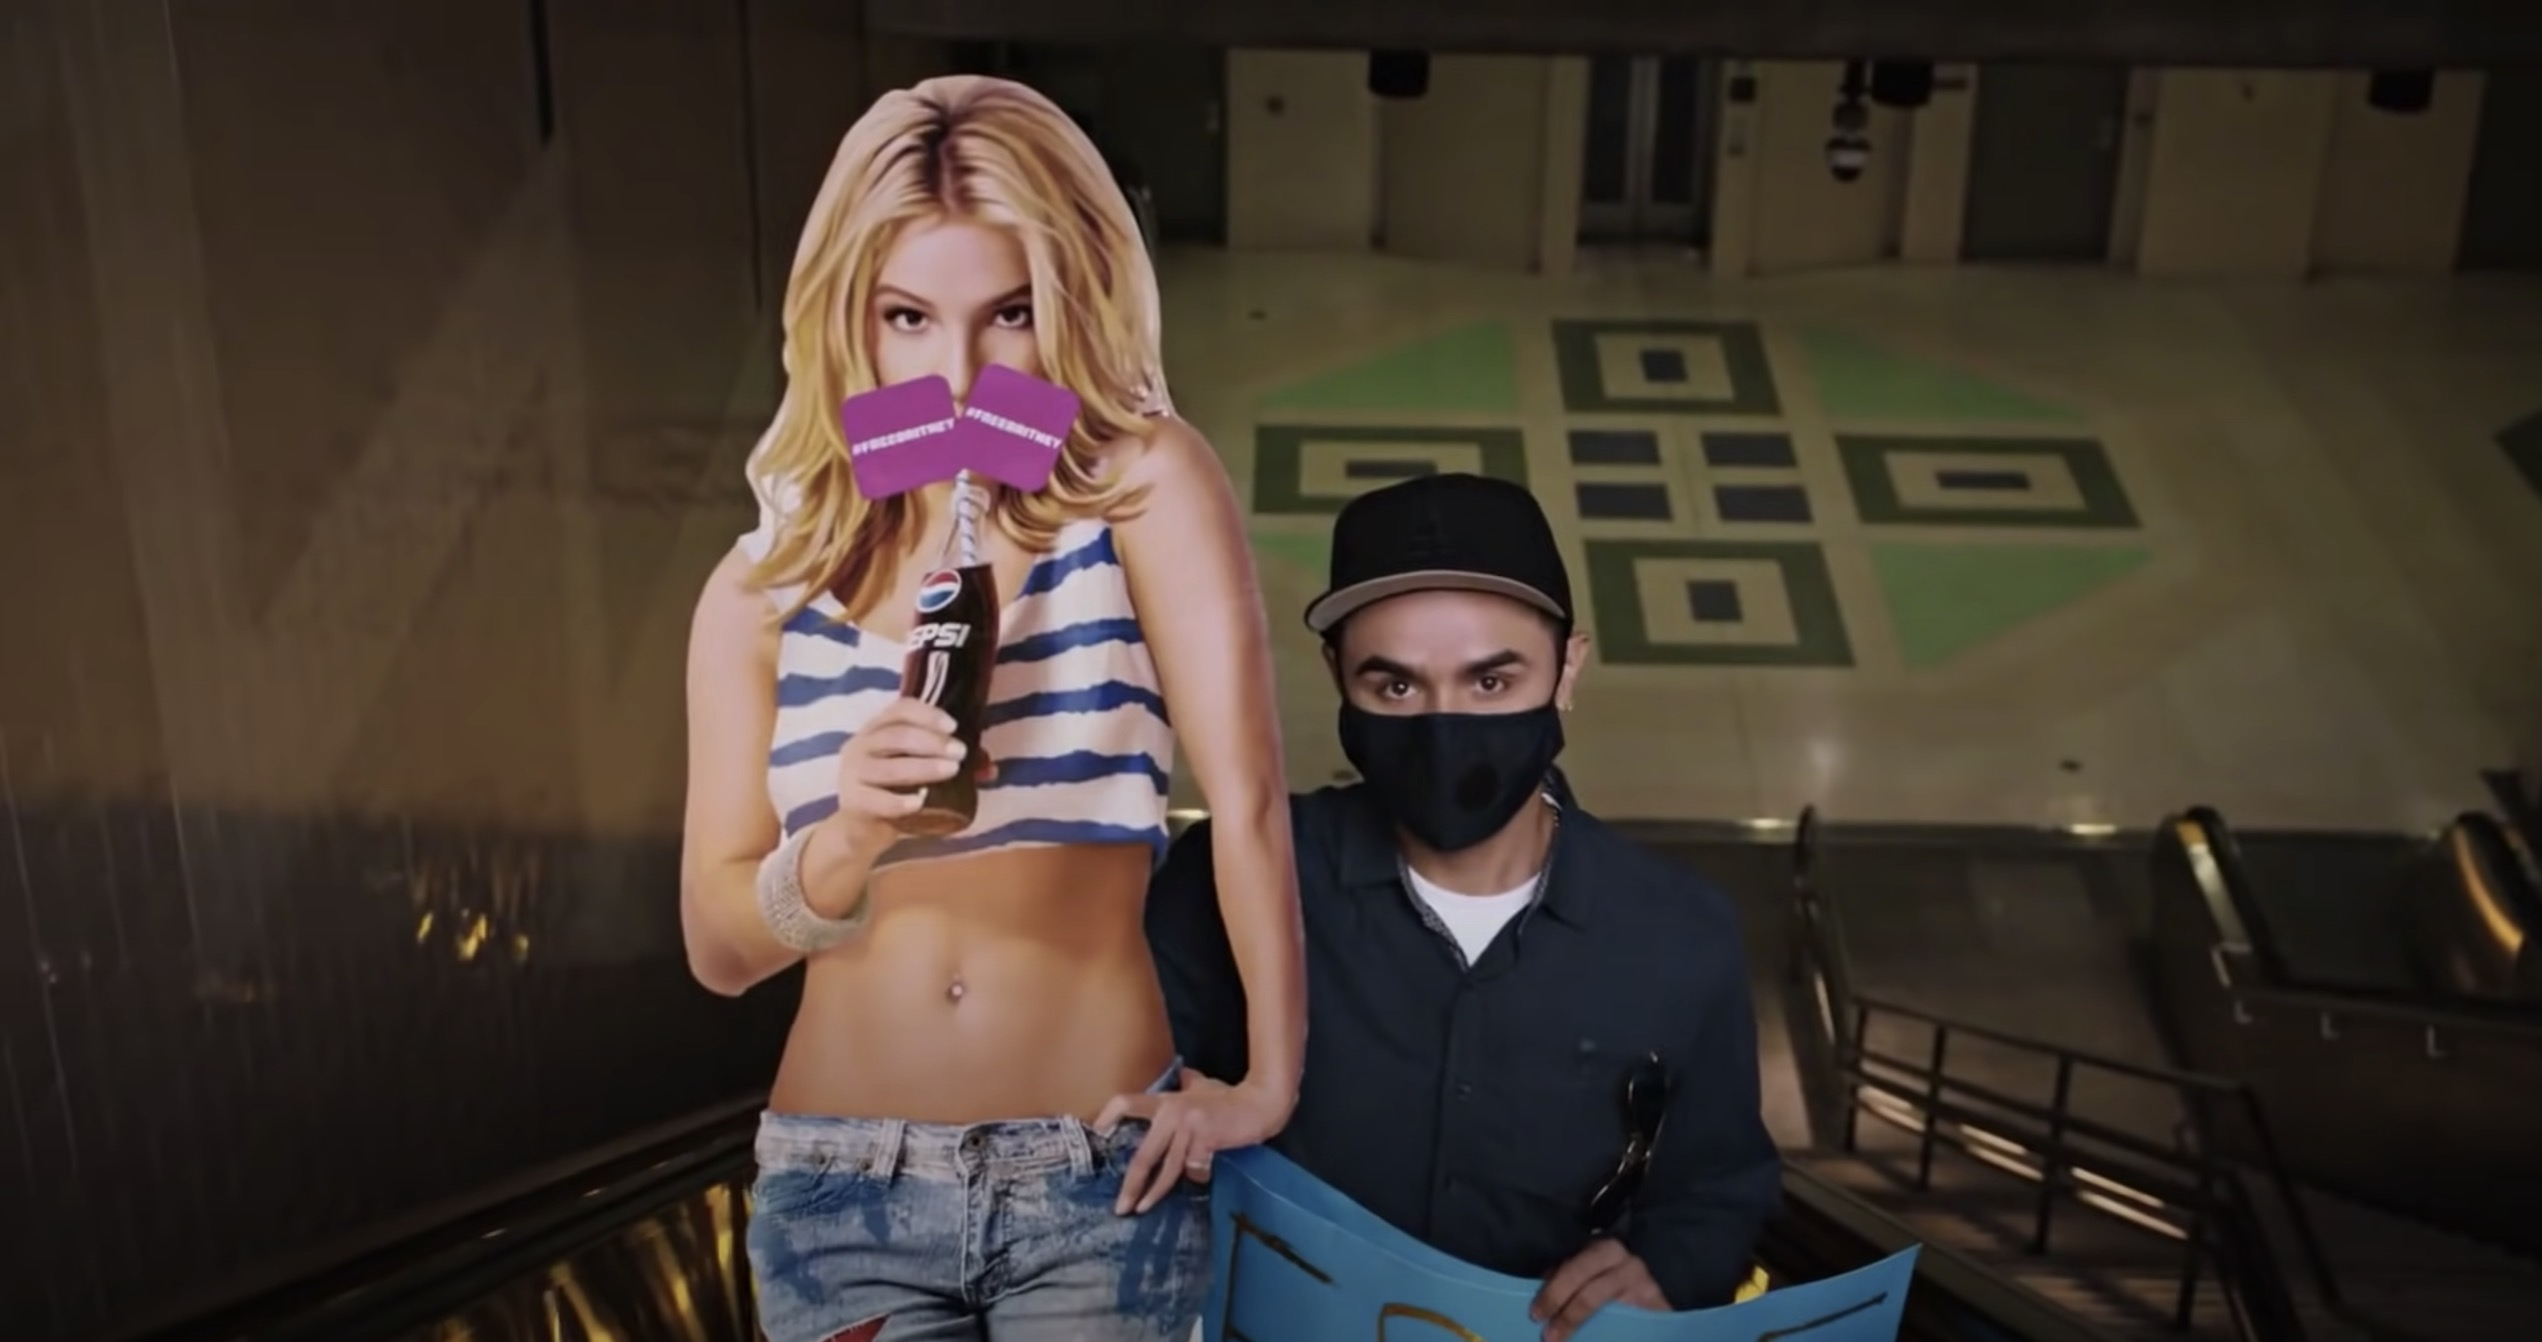 A man wearing a mask sitting next to a cardboard cutout of Britney Spears from the series Framing Britney Spears